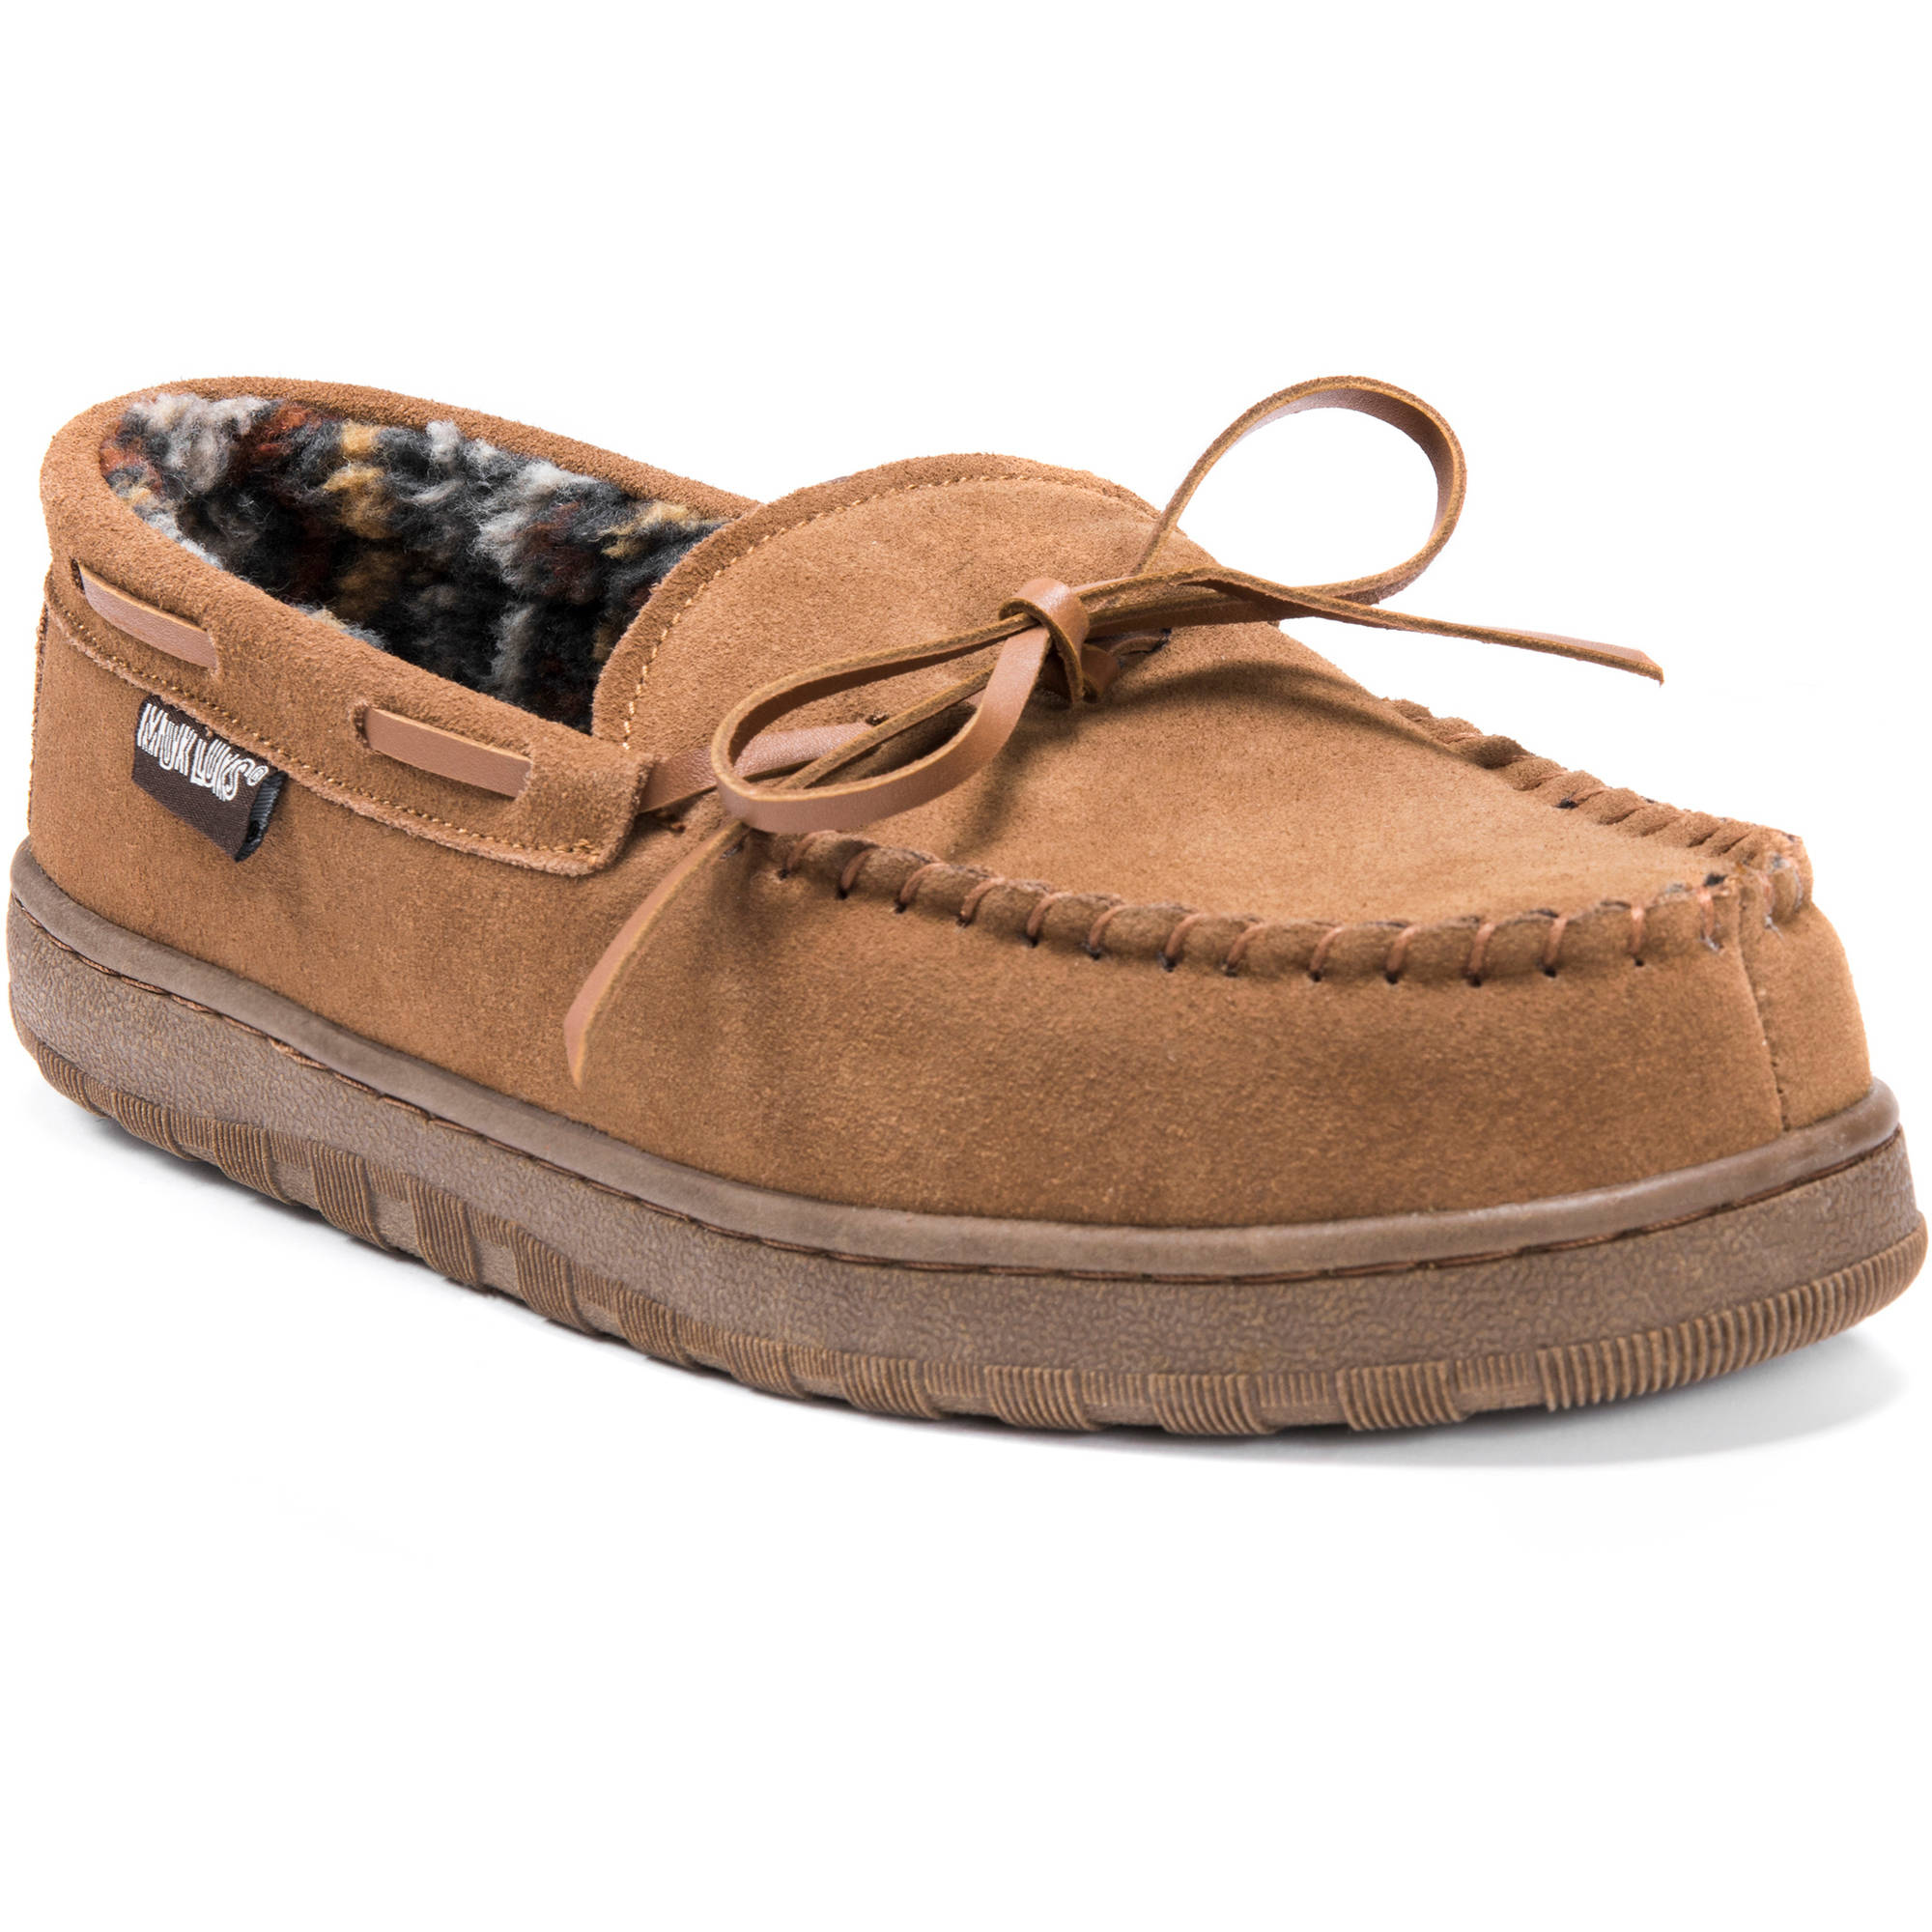 MUK LUKS Paul Men's Printed Berber Suede Moccasin Slippers